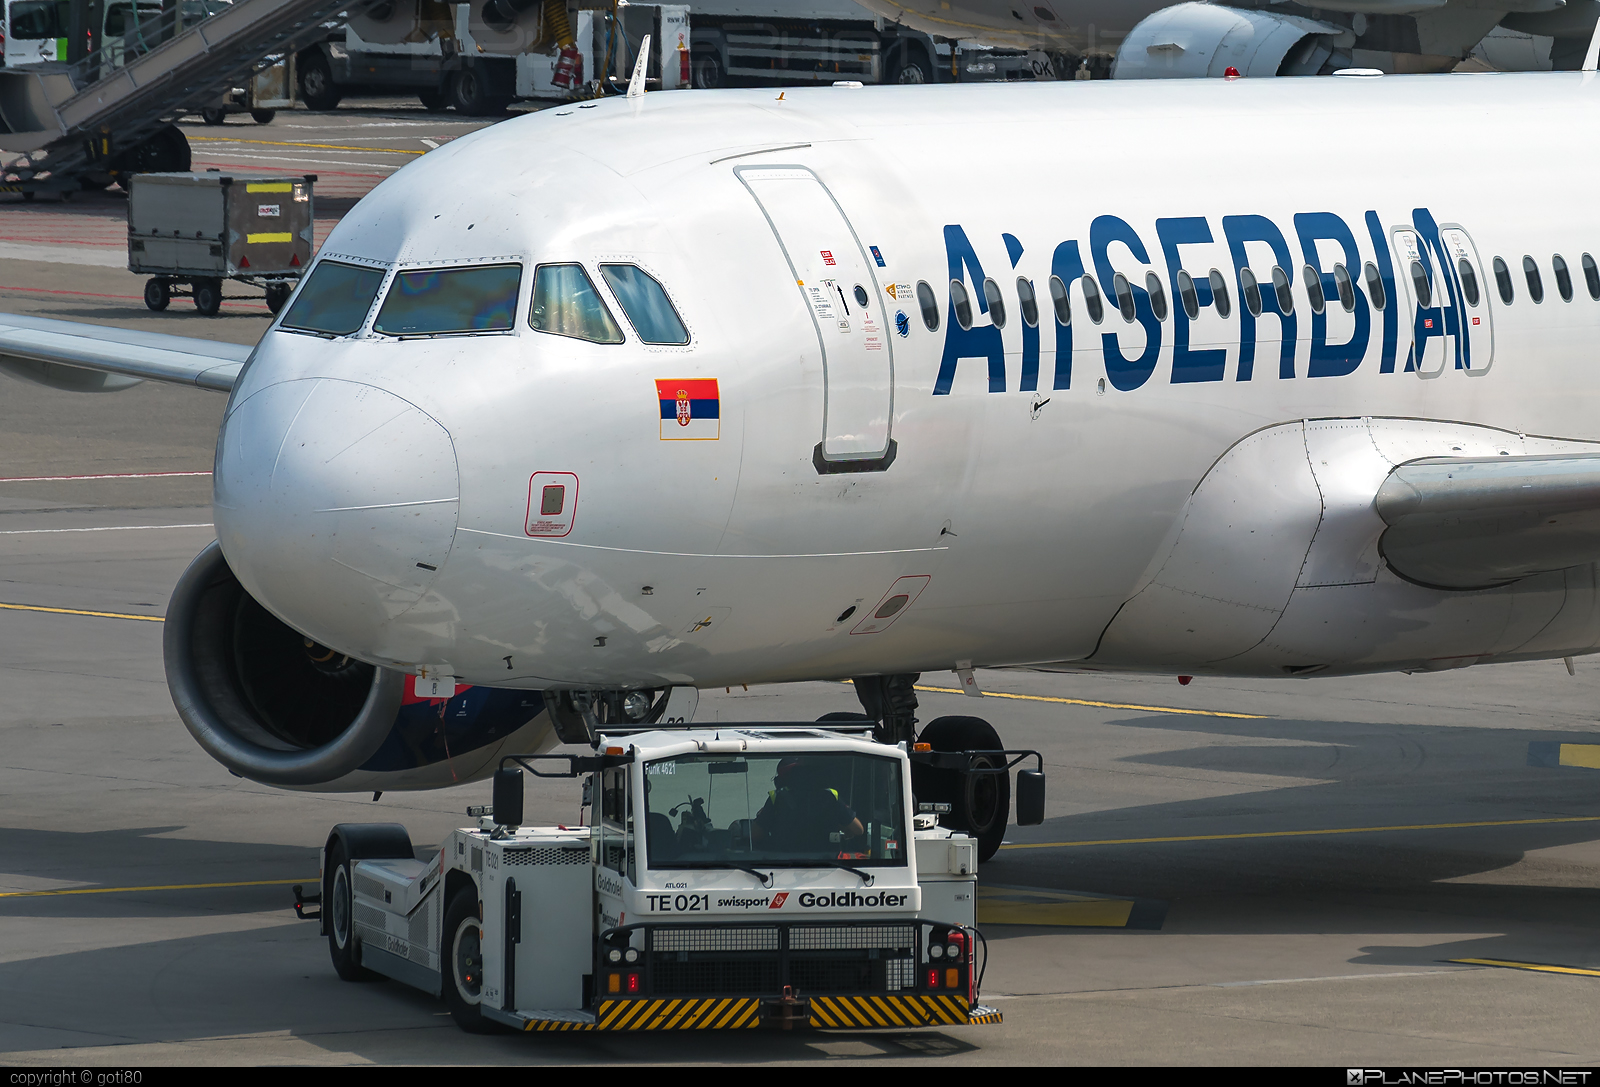 Airbus A320-232 - YU-APG operated by Air Serbia #a320 #a320family #airbus #airbus320